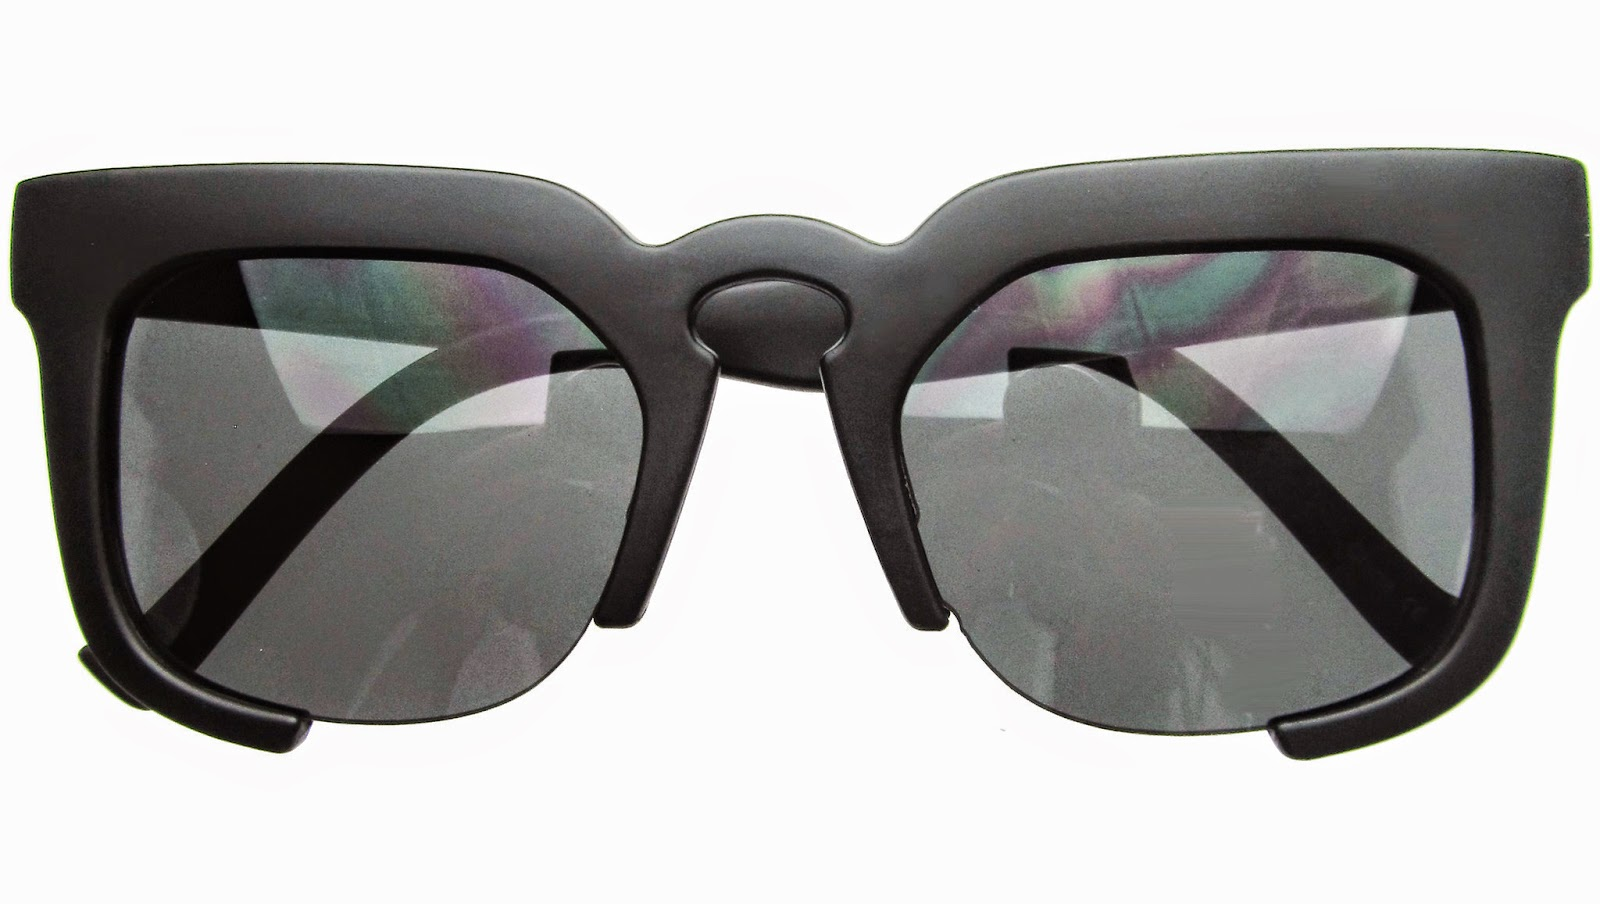 http://www.retrocitysunglasses.com/collections/all/products/collette-cat-eye-sunglasses-in-black